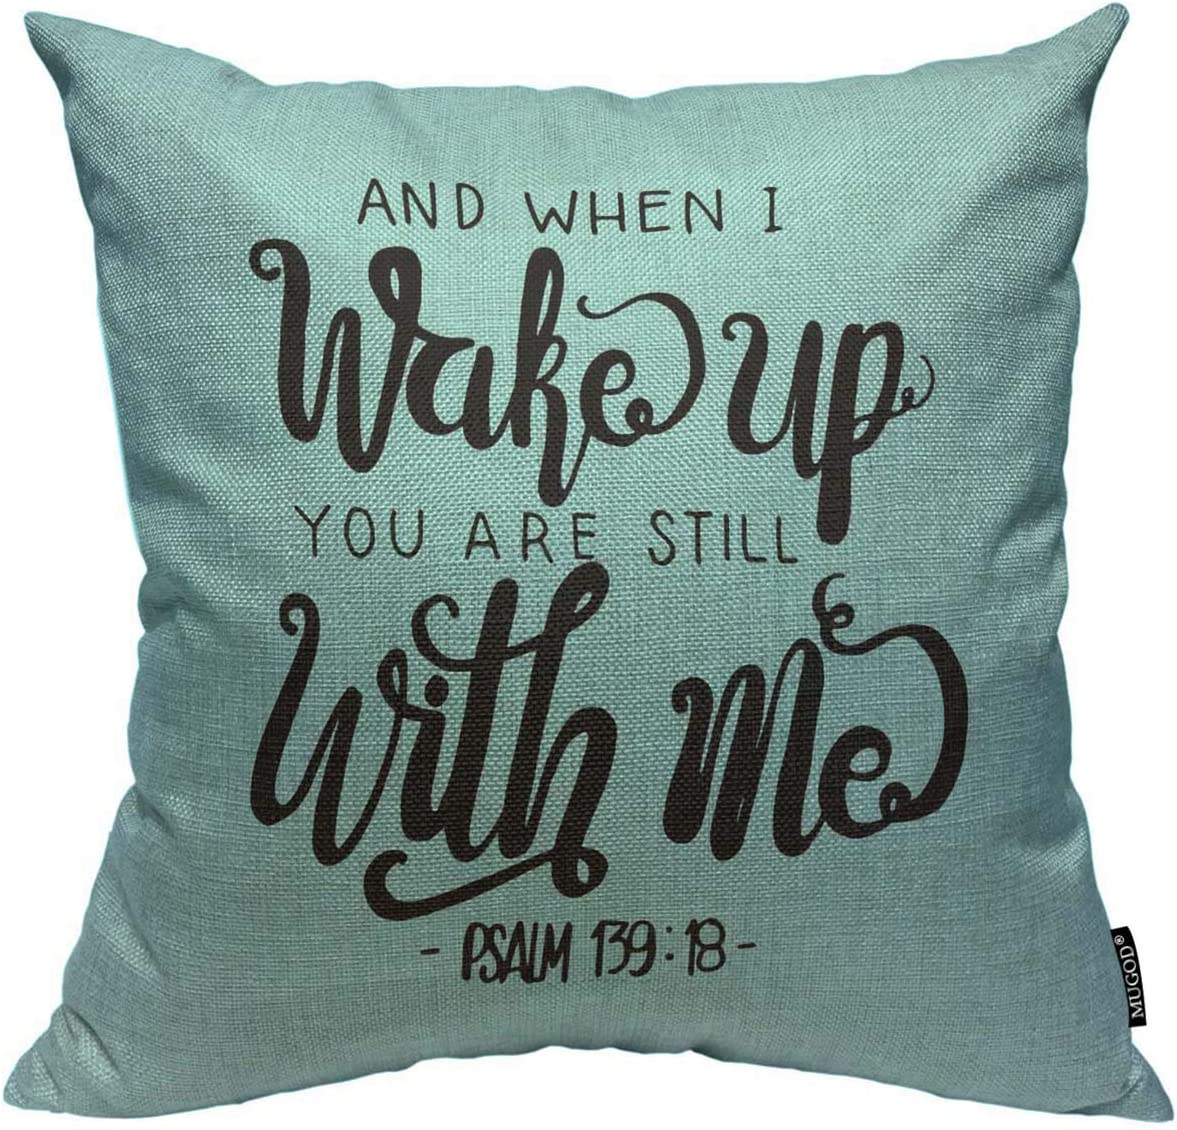 Mugod Bible Verse Throw Pillow Cover and When I Wake Up You are Still with Me Hand Lettered Quote Home Decorative Square Pillow Case for Men Women Kids Bedroom Livingroom Cushion Cover 18